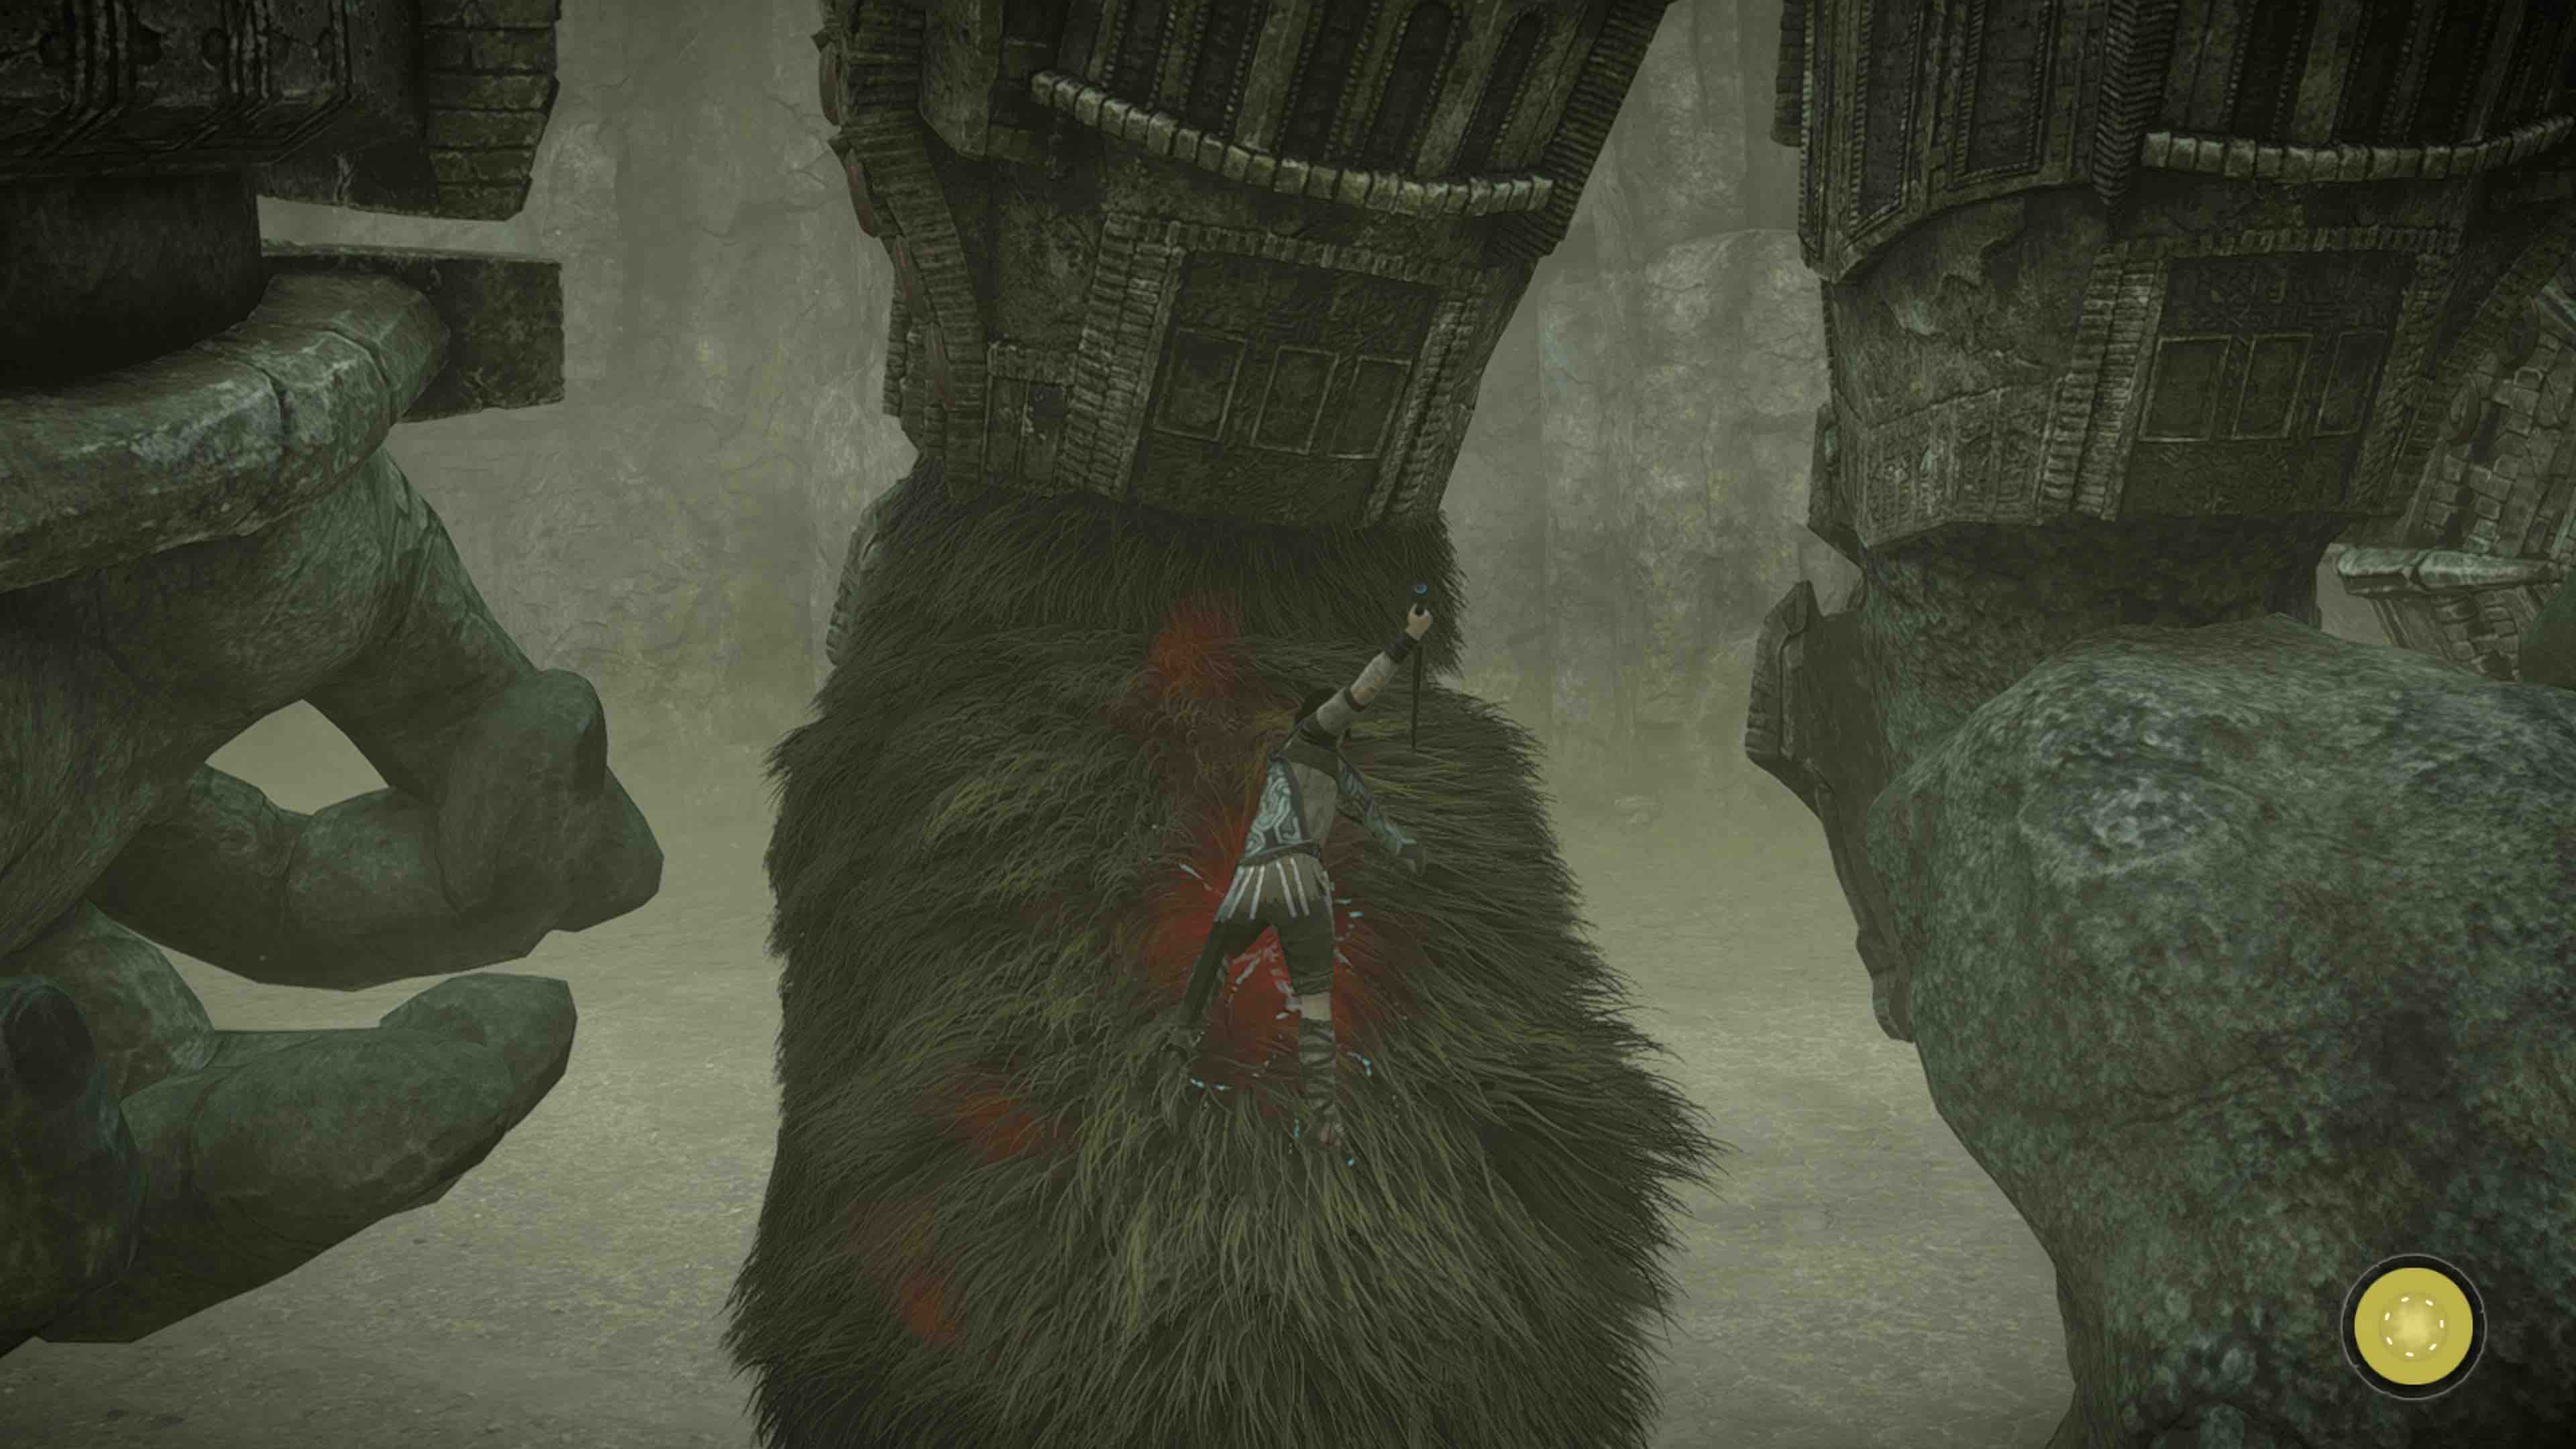 Shadow_of_the_Colossus_Coloso_1_2